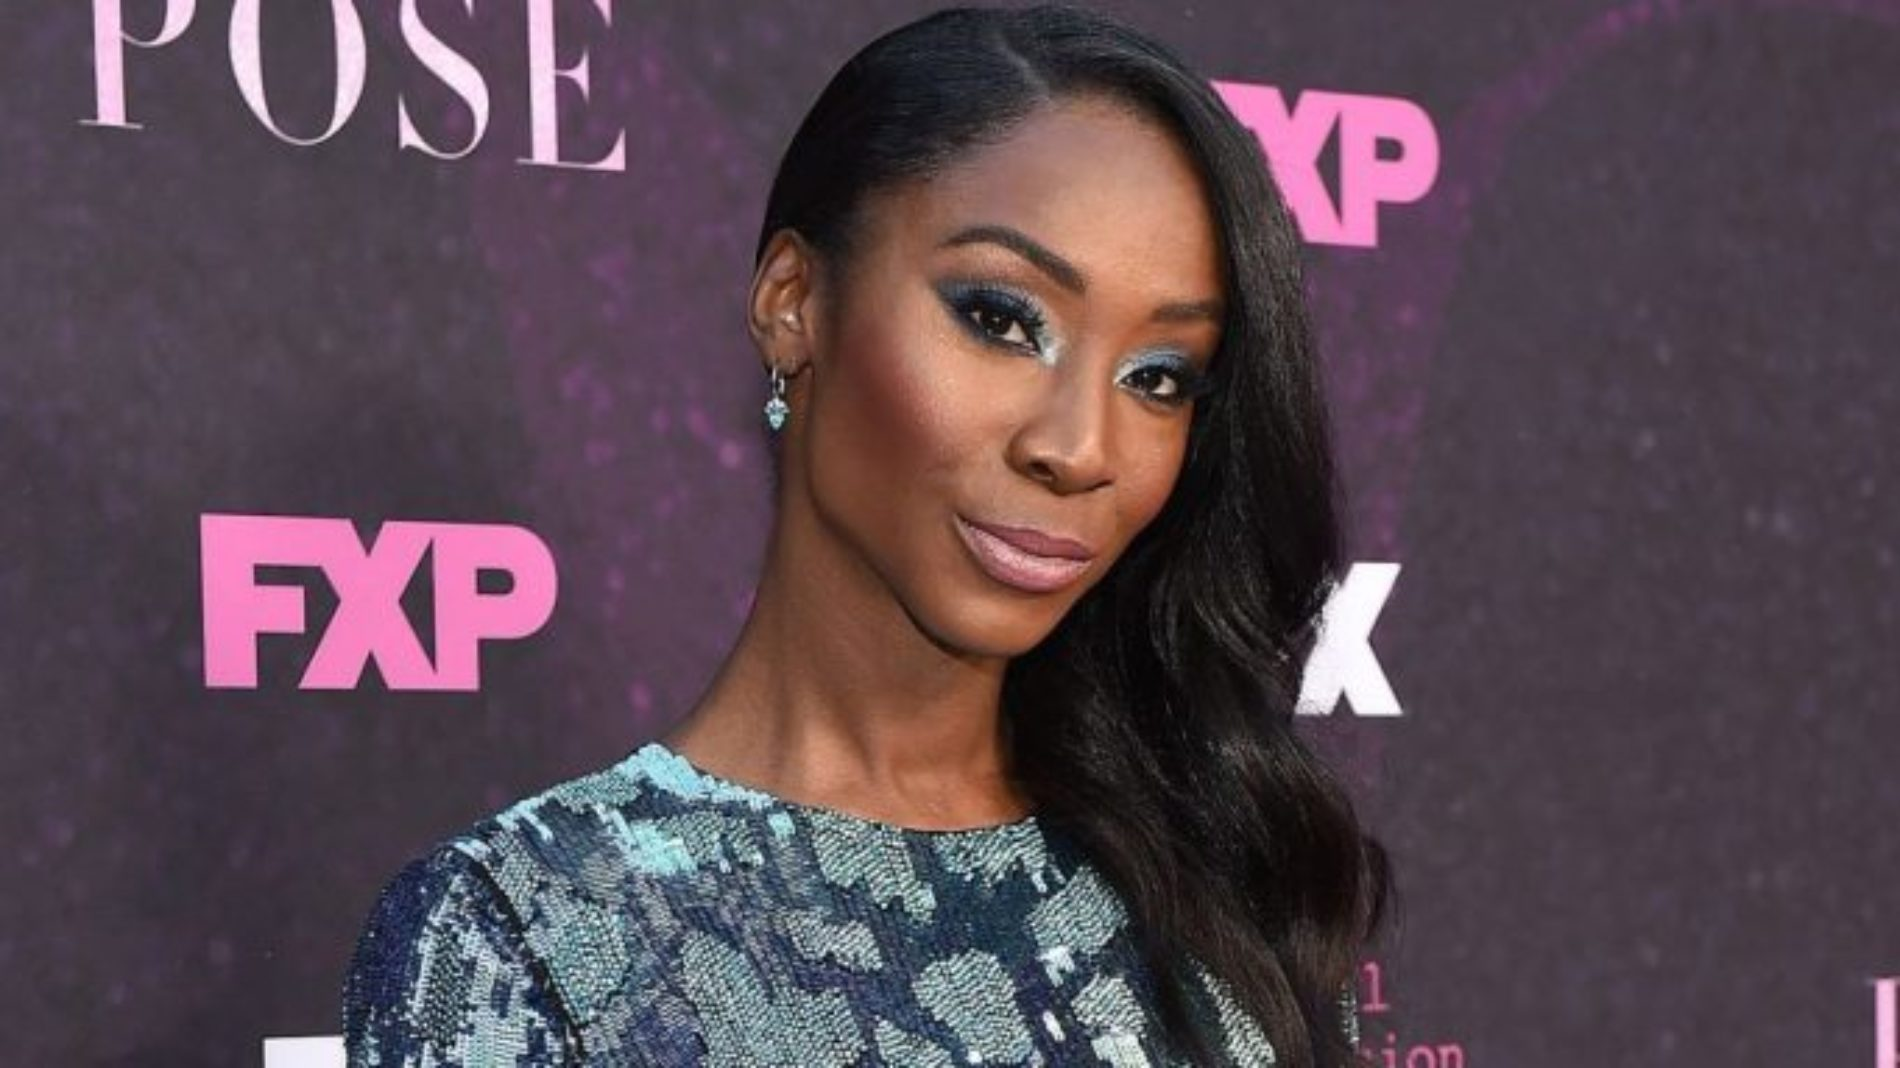 'Pose' star Angelica Ross discovers new boyfriend has fiancée and son after posting loved-up pics